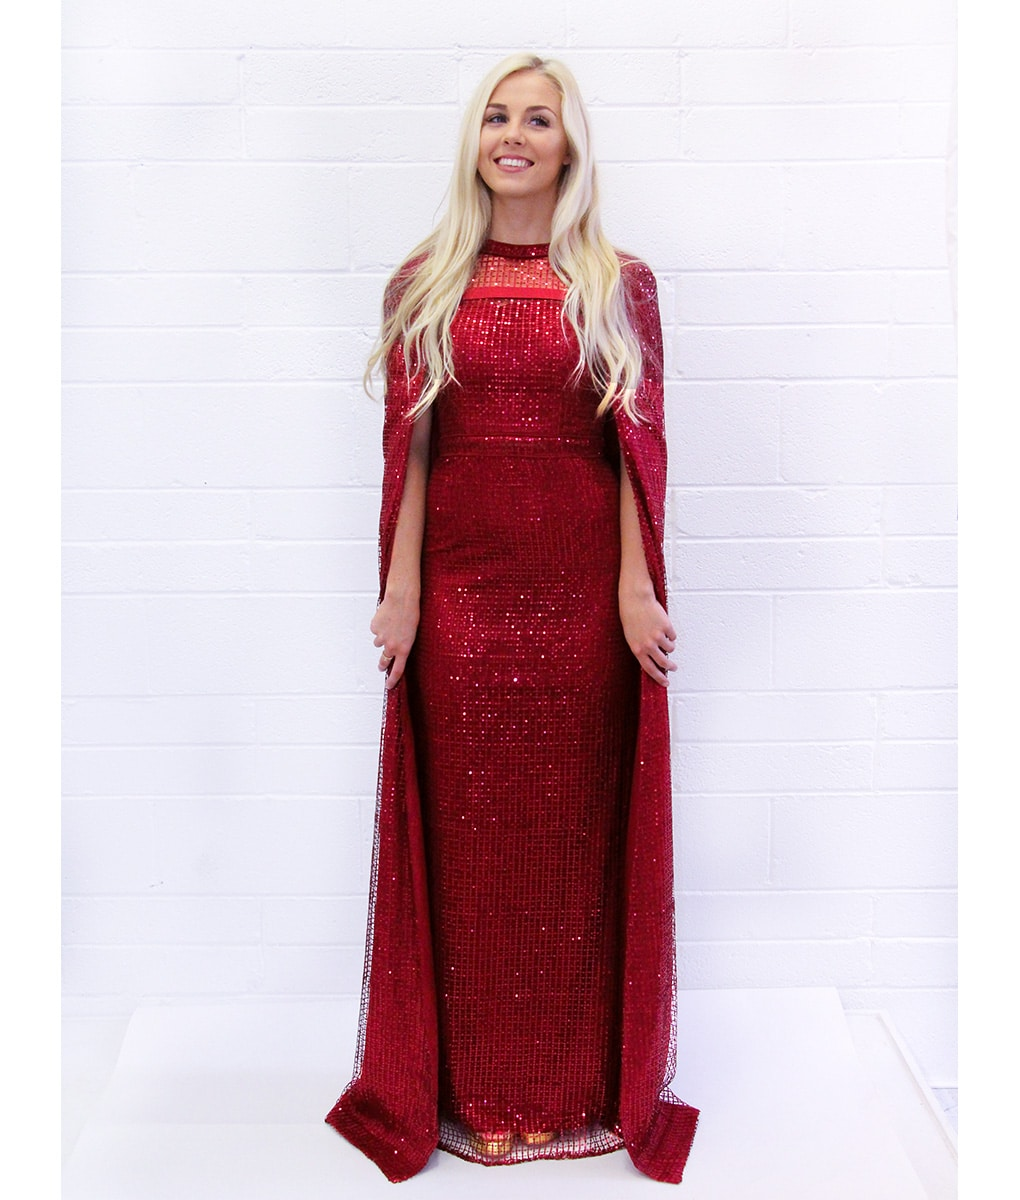 Alila-burgundy-red-sequin-cape-gown-Bariano